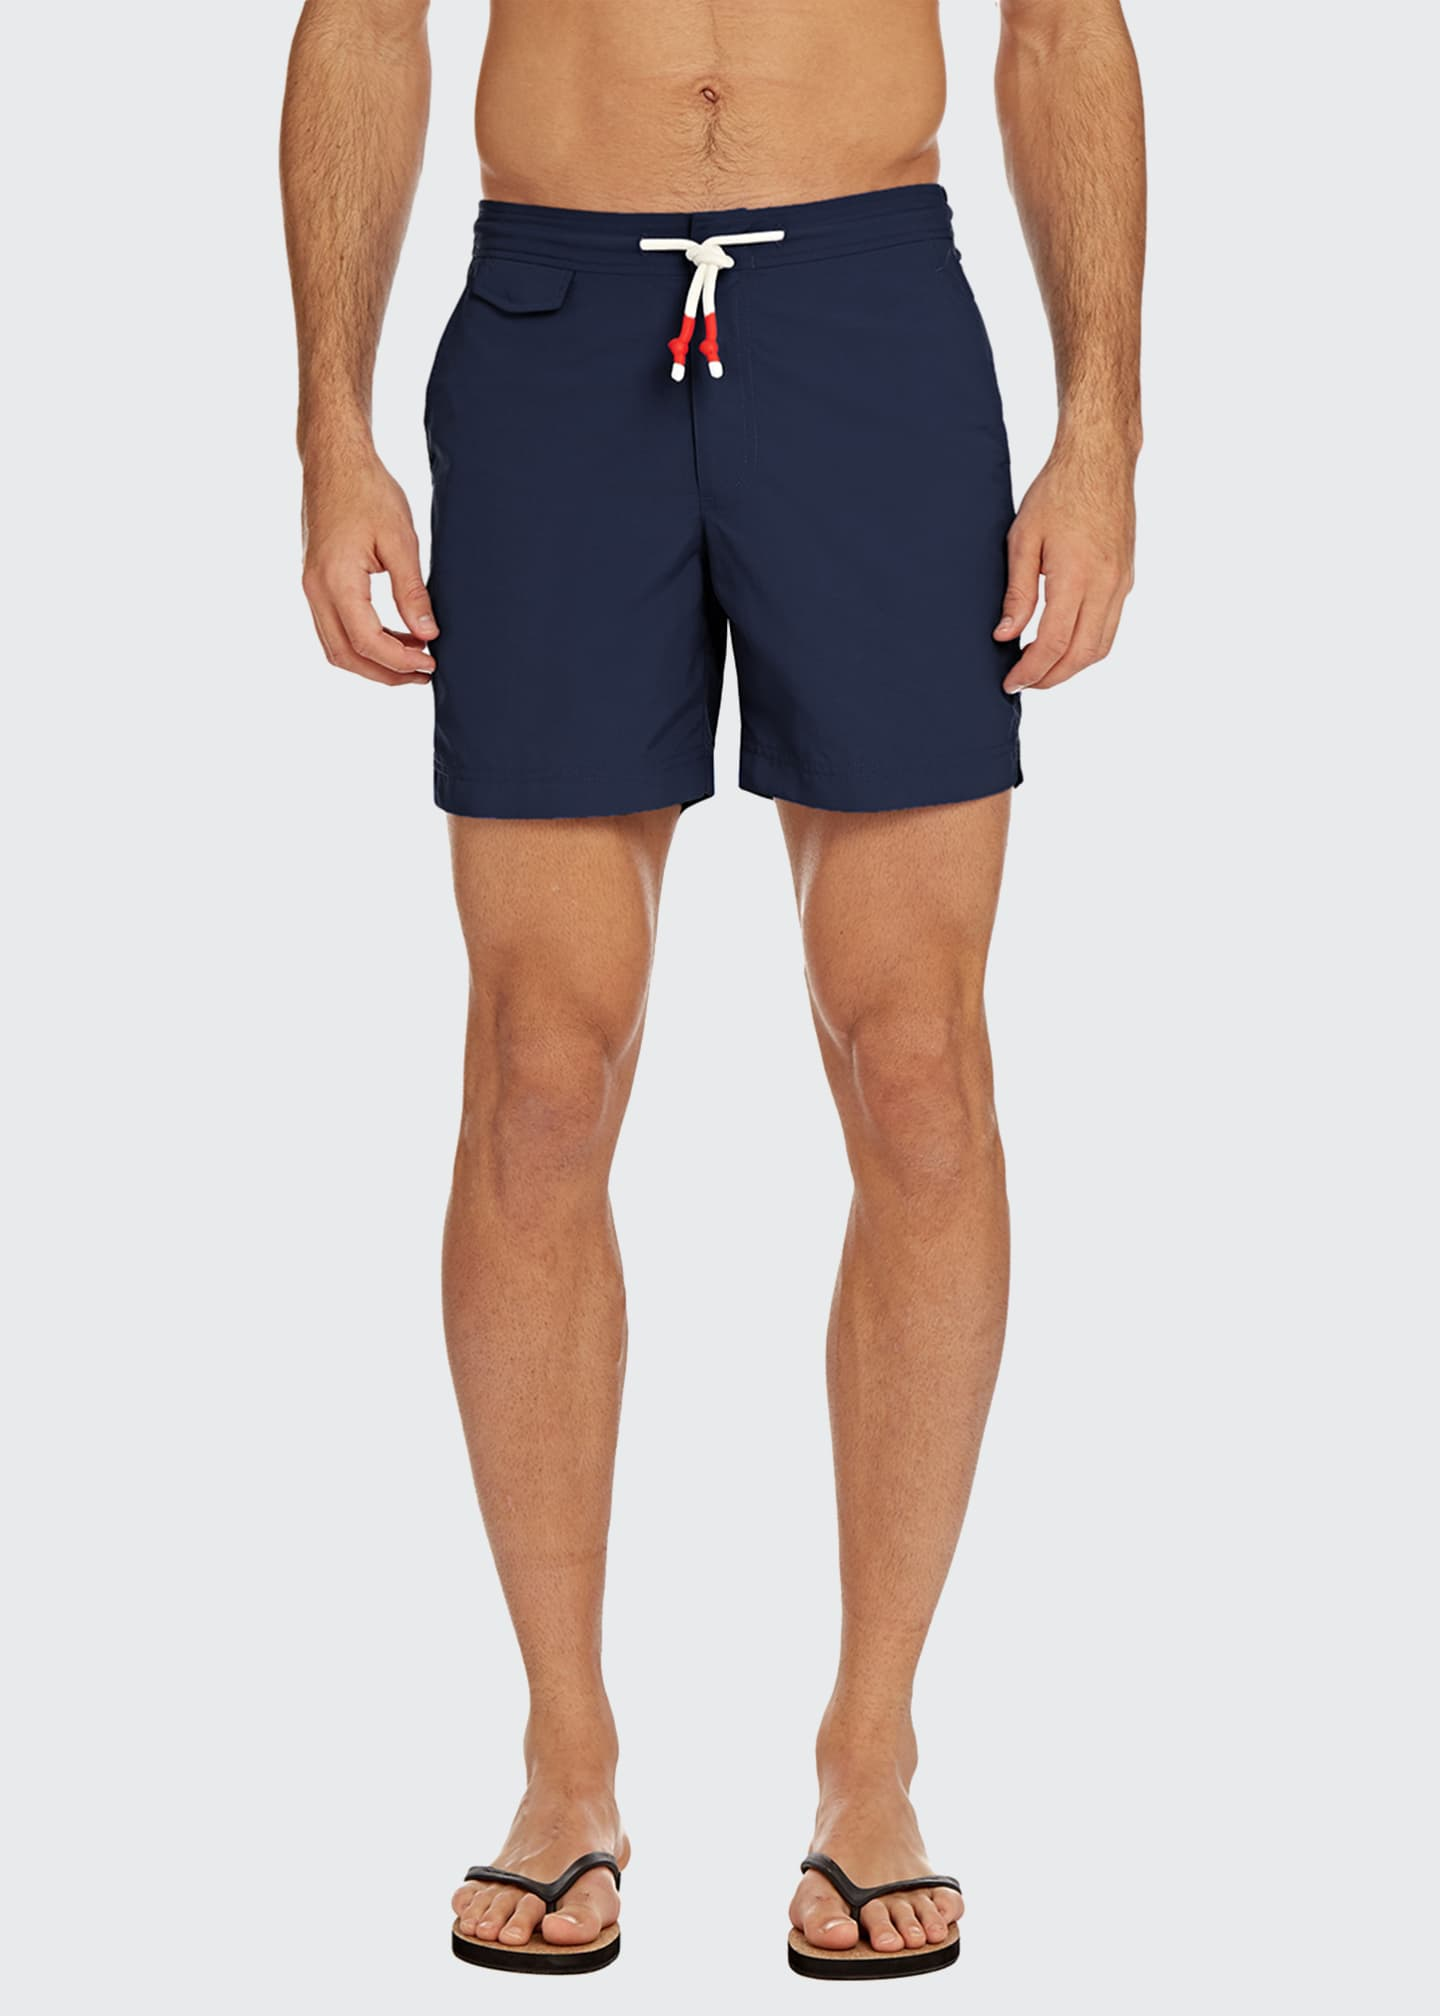 Image 1 of 3: Men's Bulldog Standard Mid-Length Drawstring Swim Trunks